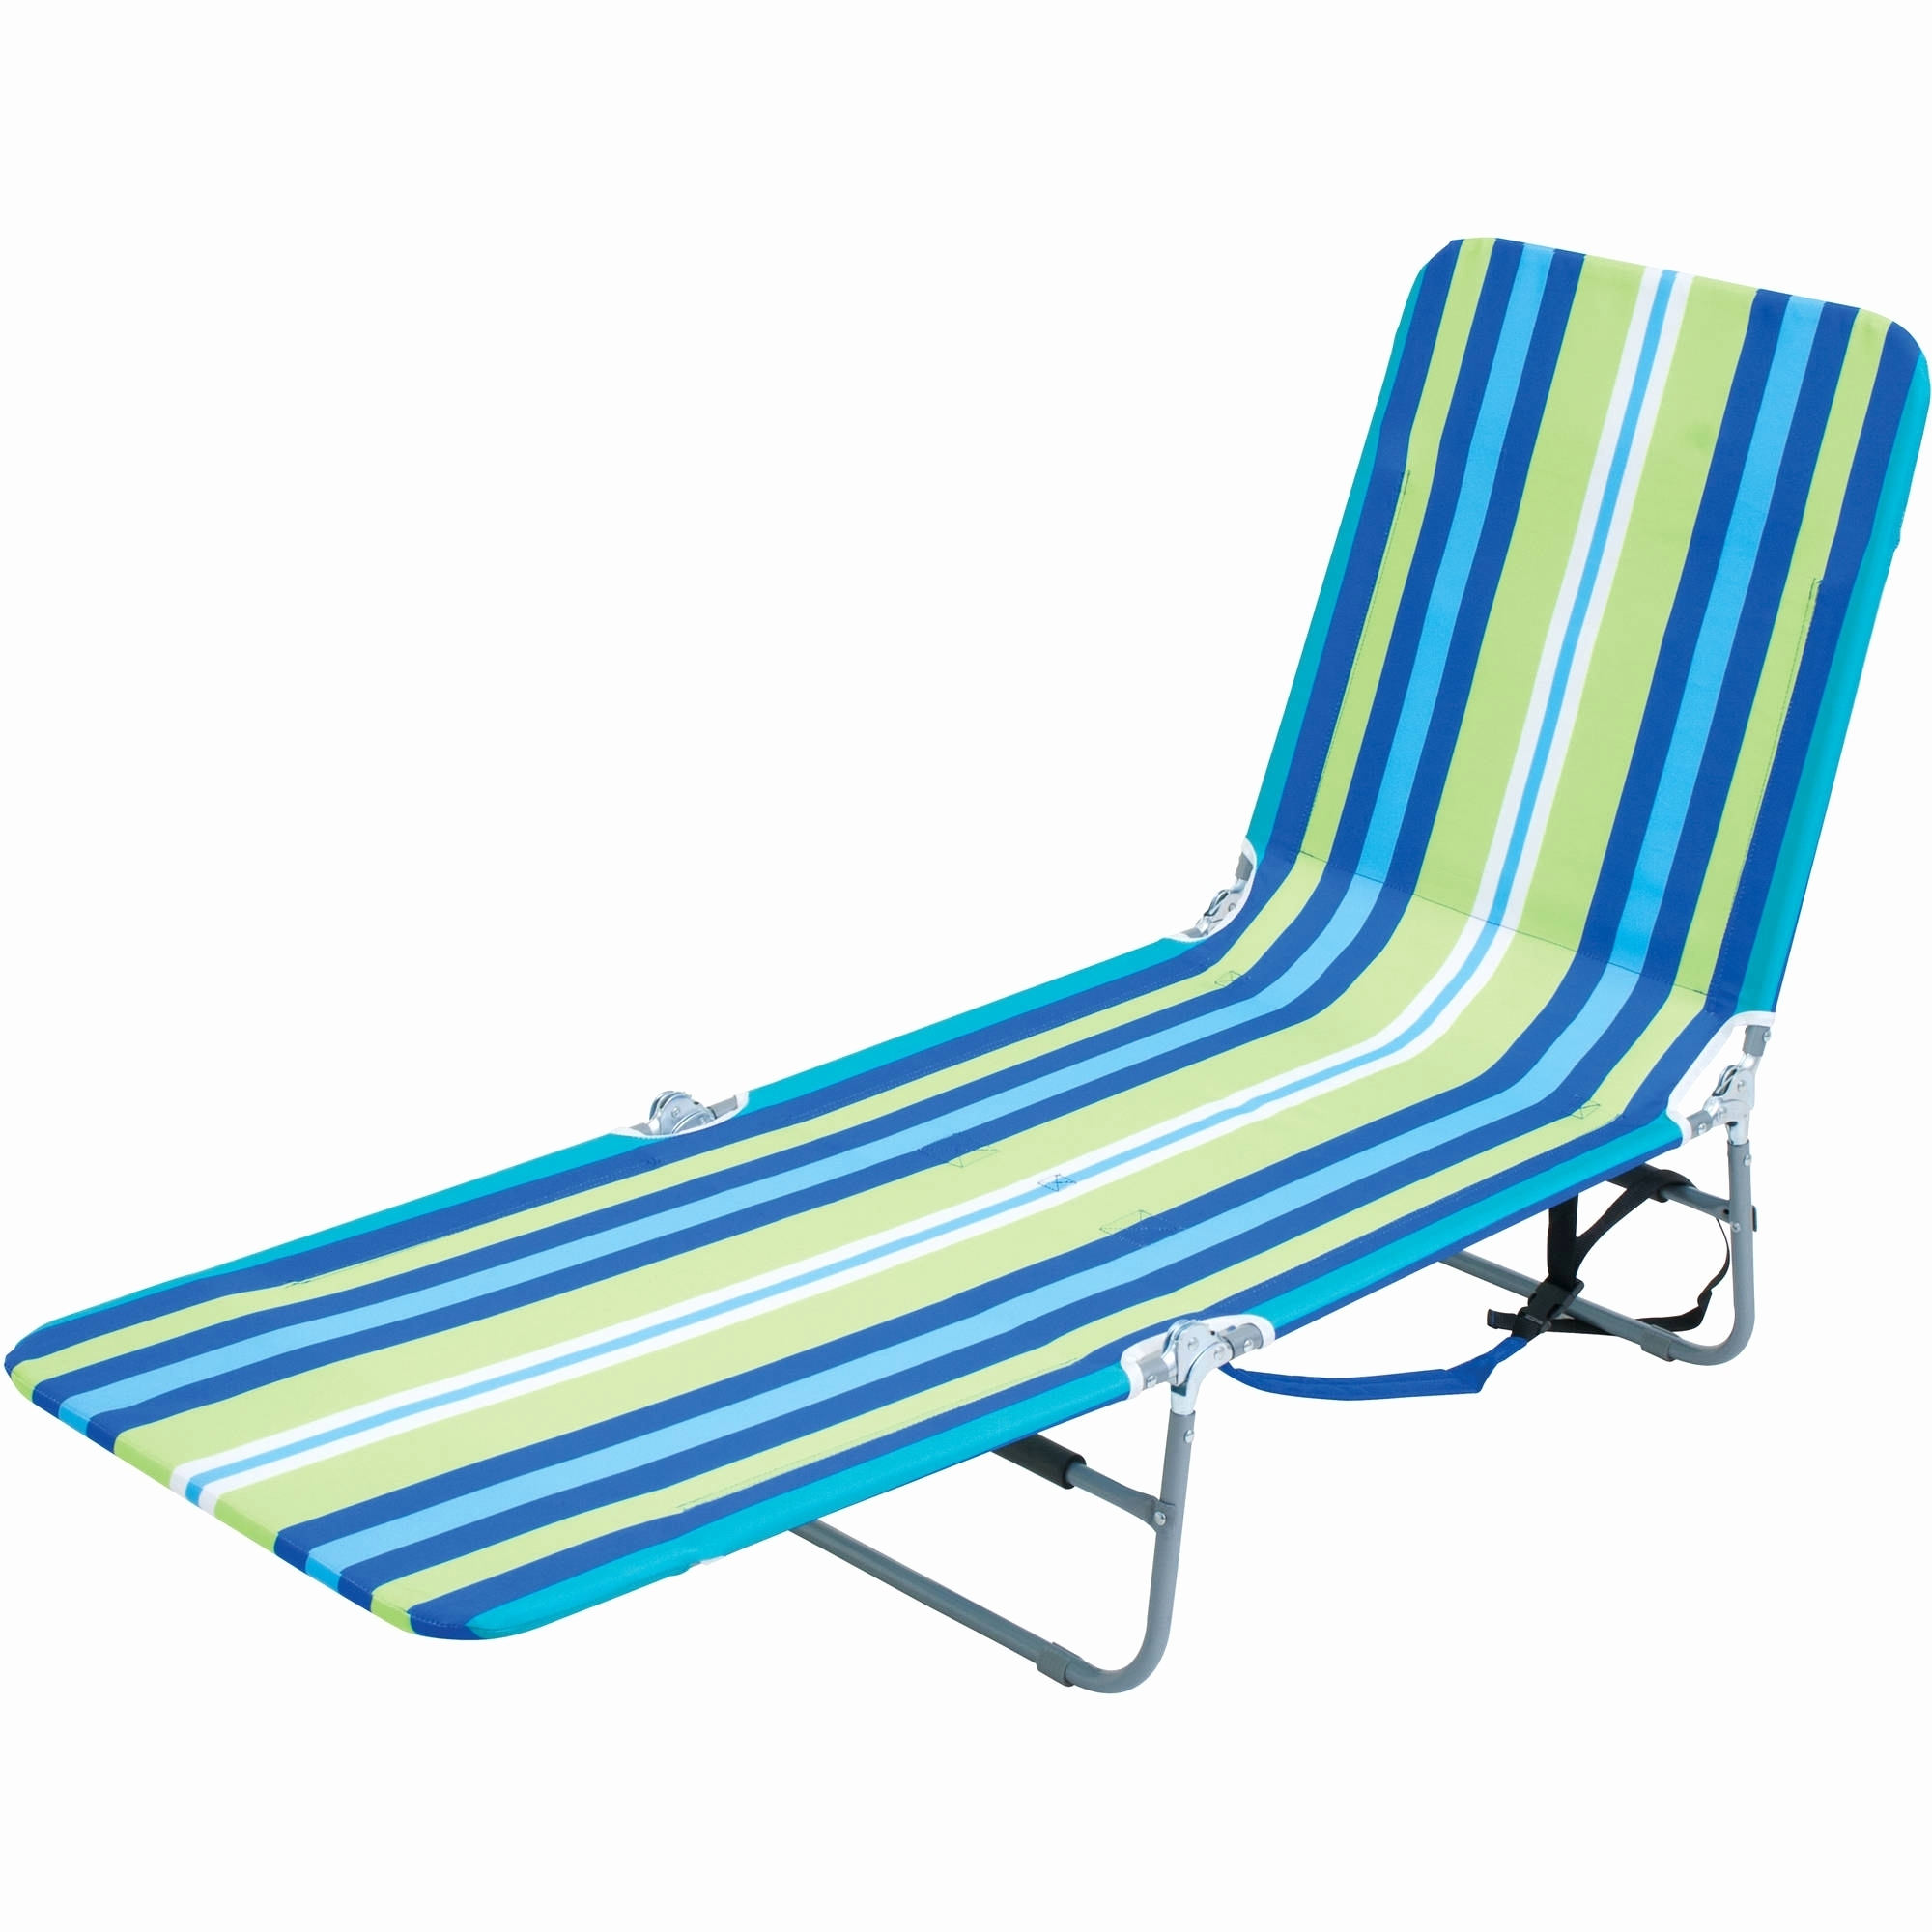 Picture 10 Of 30 – Outdoor Lounge Chairs Walmart Inspirational Pertaining To Latest Walmart Outdoor Chaise Lounges (View 10 of 15)